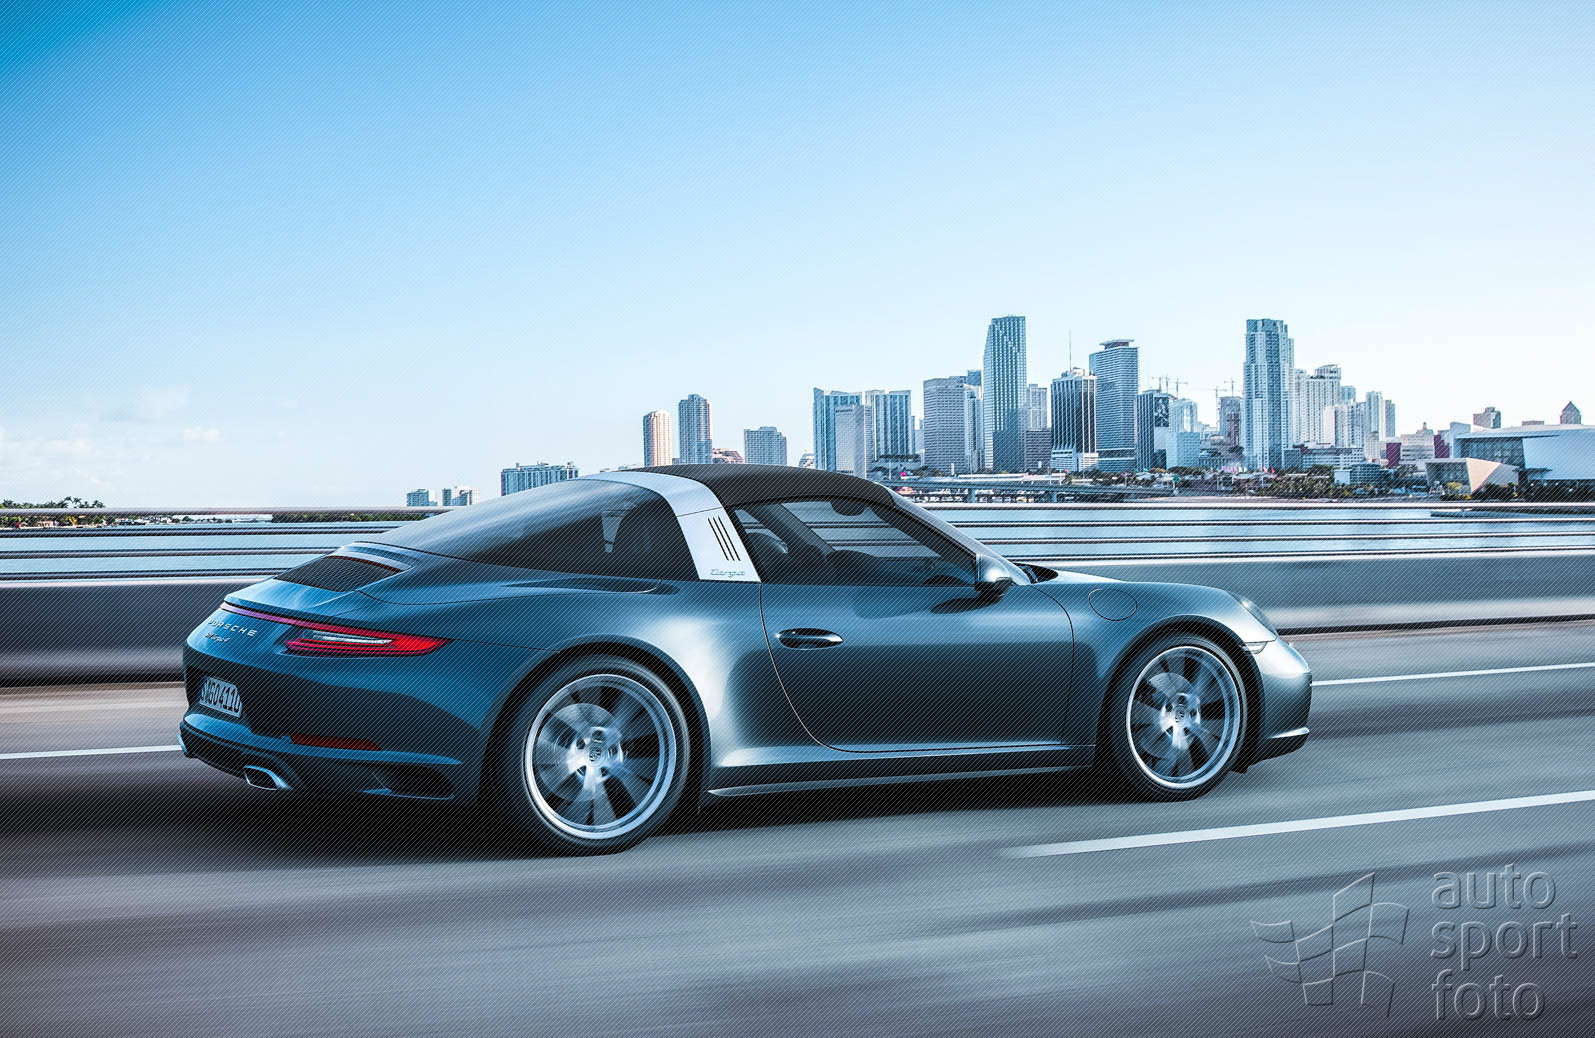 New Developments In The Visual Appearance Also Underline The Sophisticated  Elegance Of The 911 Targa. With Its Individual Design, The New 911 Targa ...